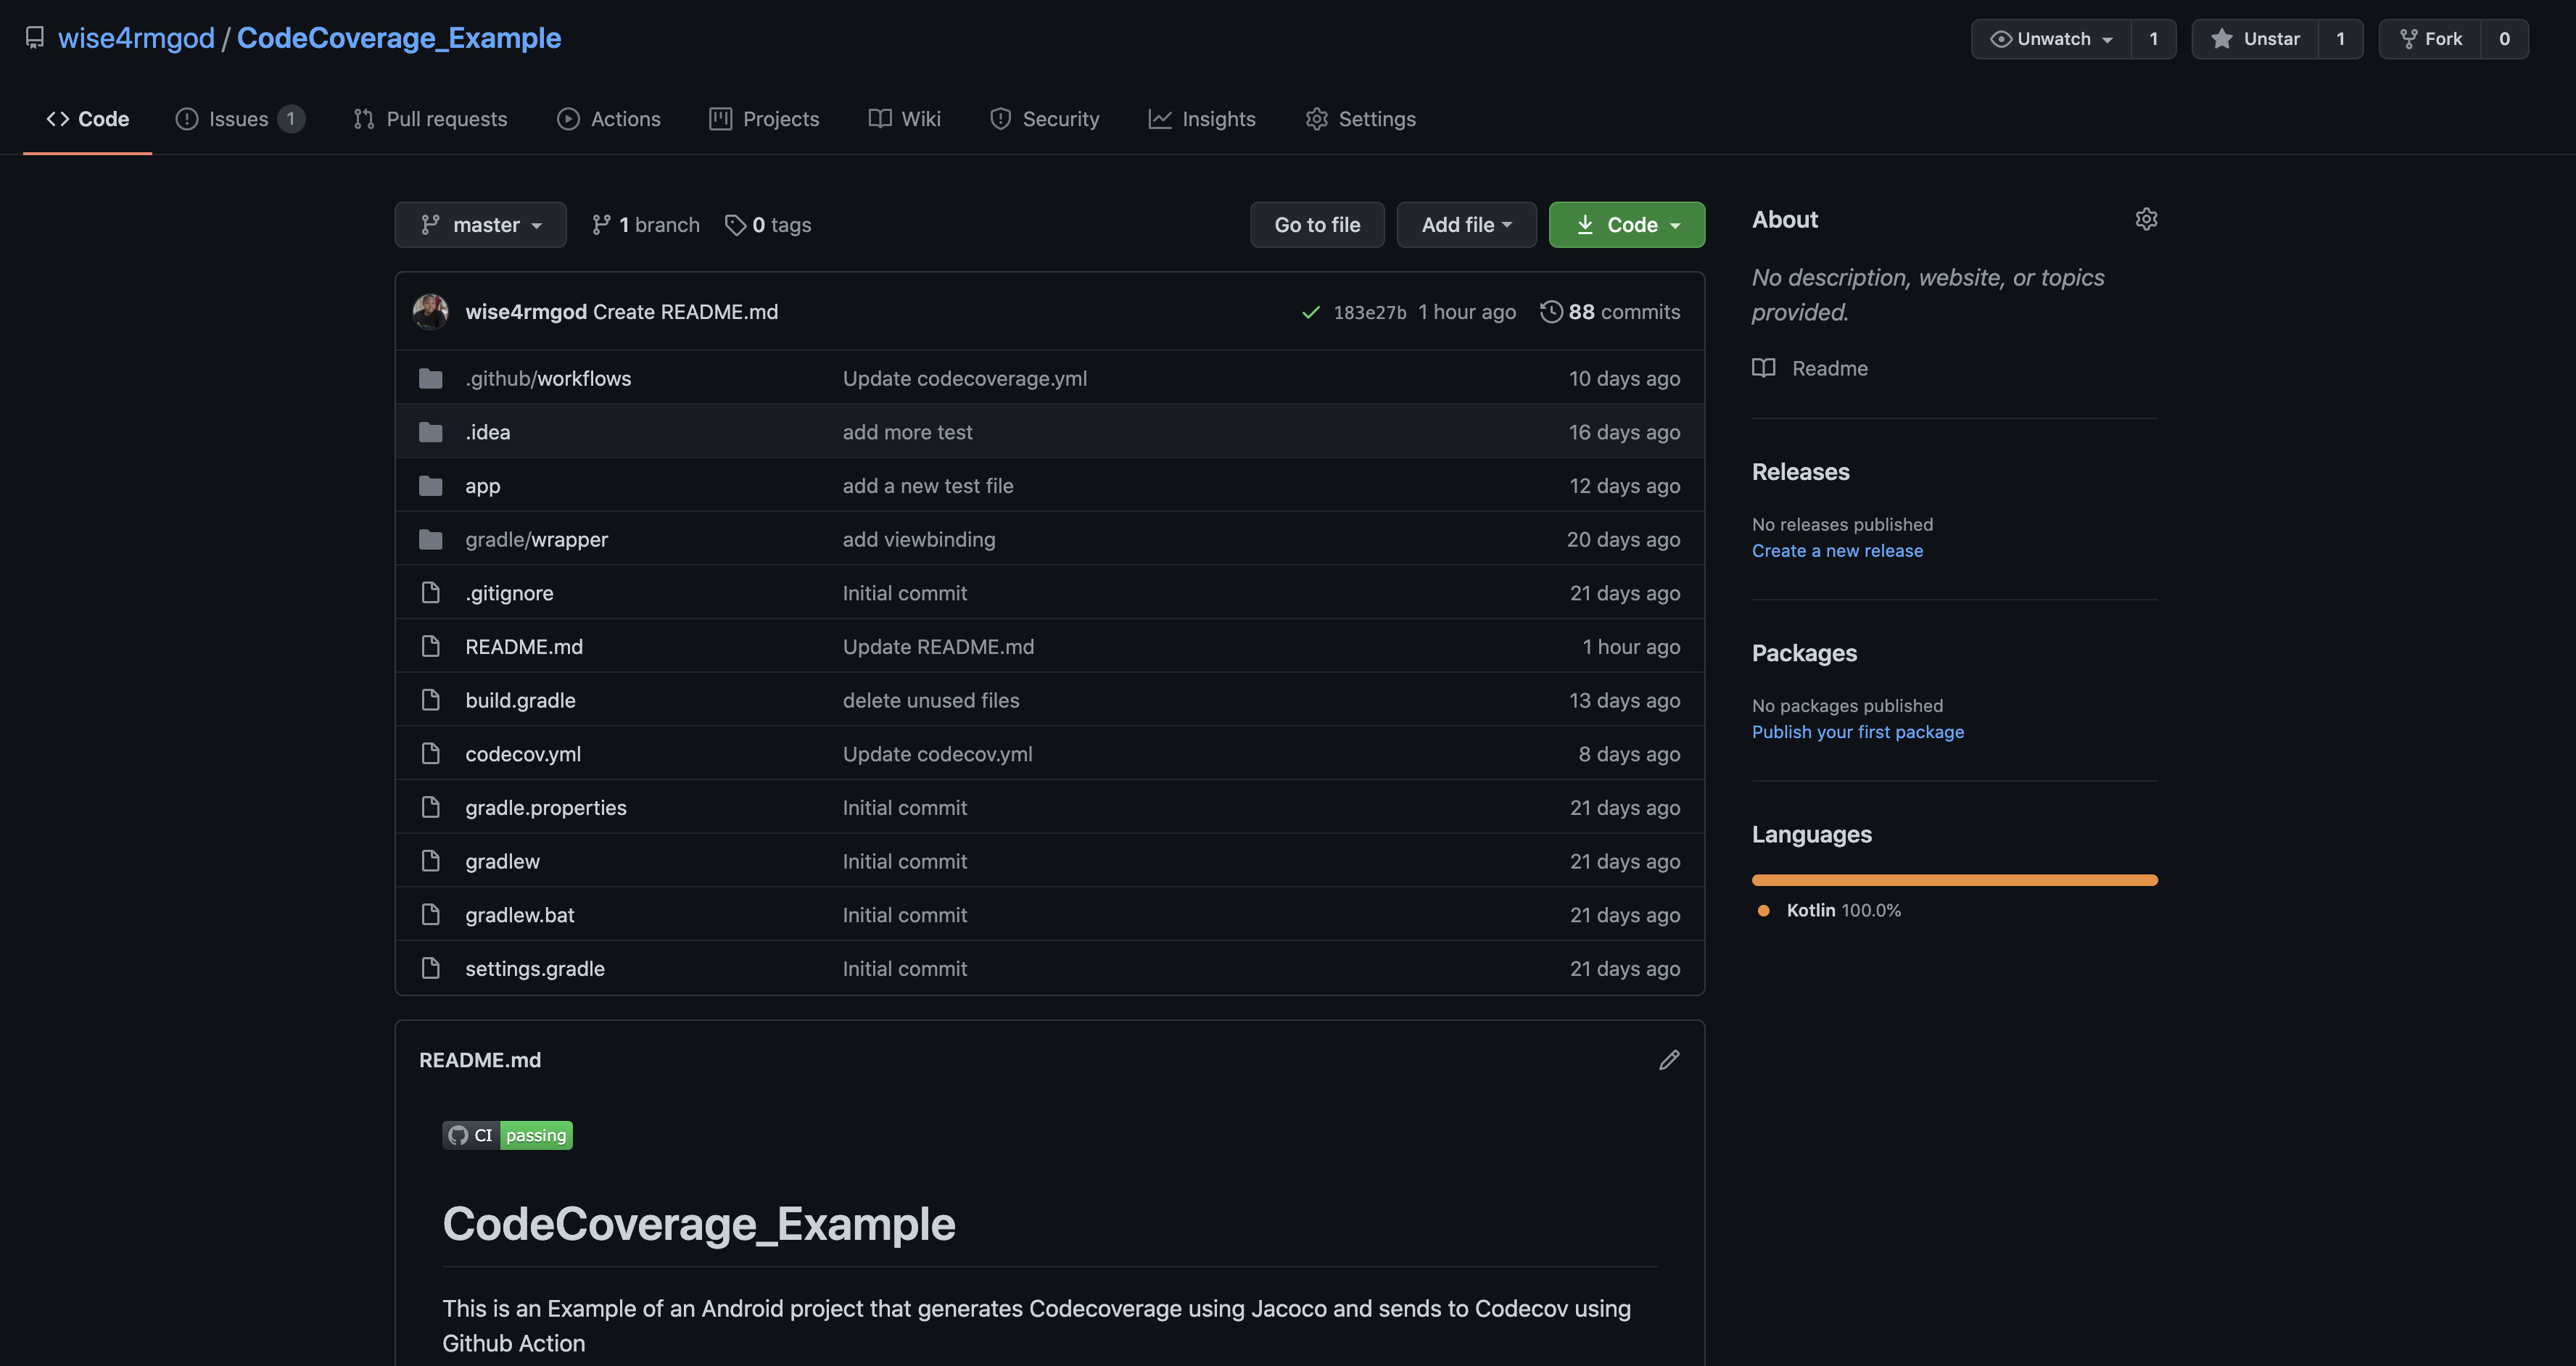 Sample code coverage GitHub project